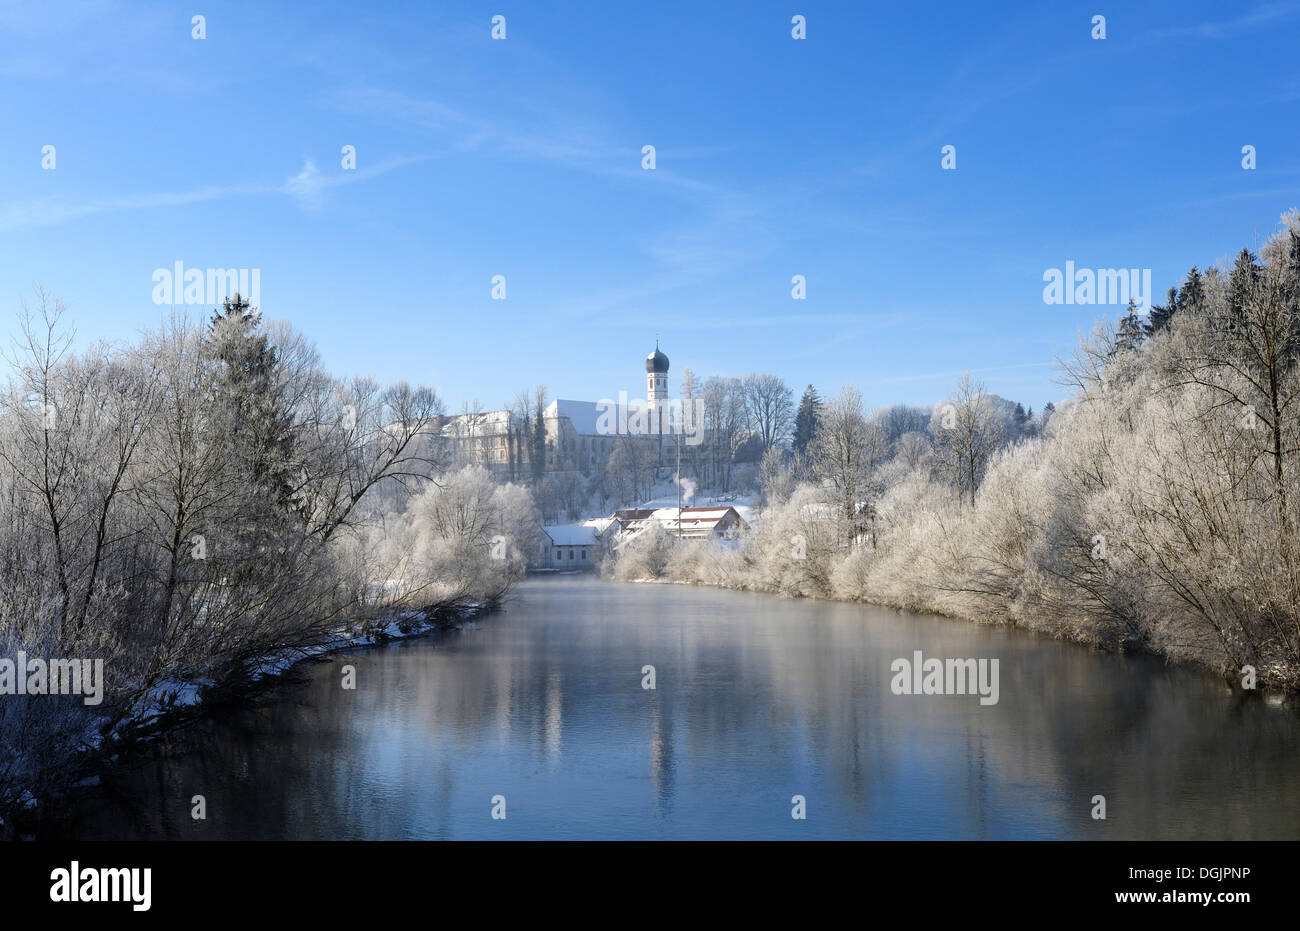 Loisach River and Beuerberg Abbey, district of Bad Toelz - Wolfratshausen, Upper Bavaria, Bavaria - Stock Image